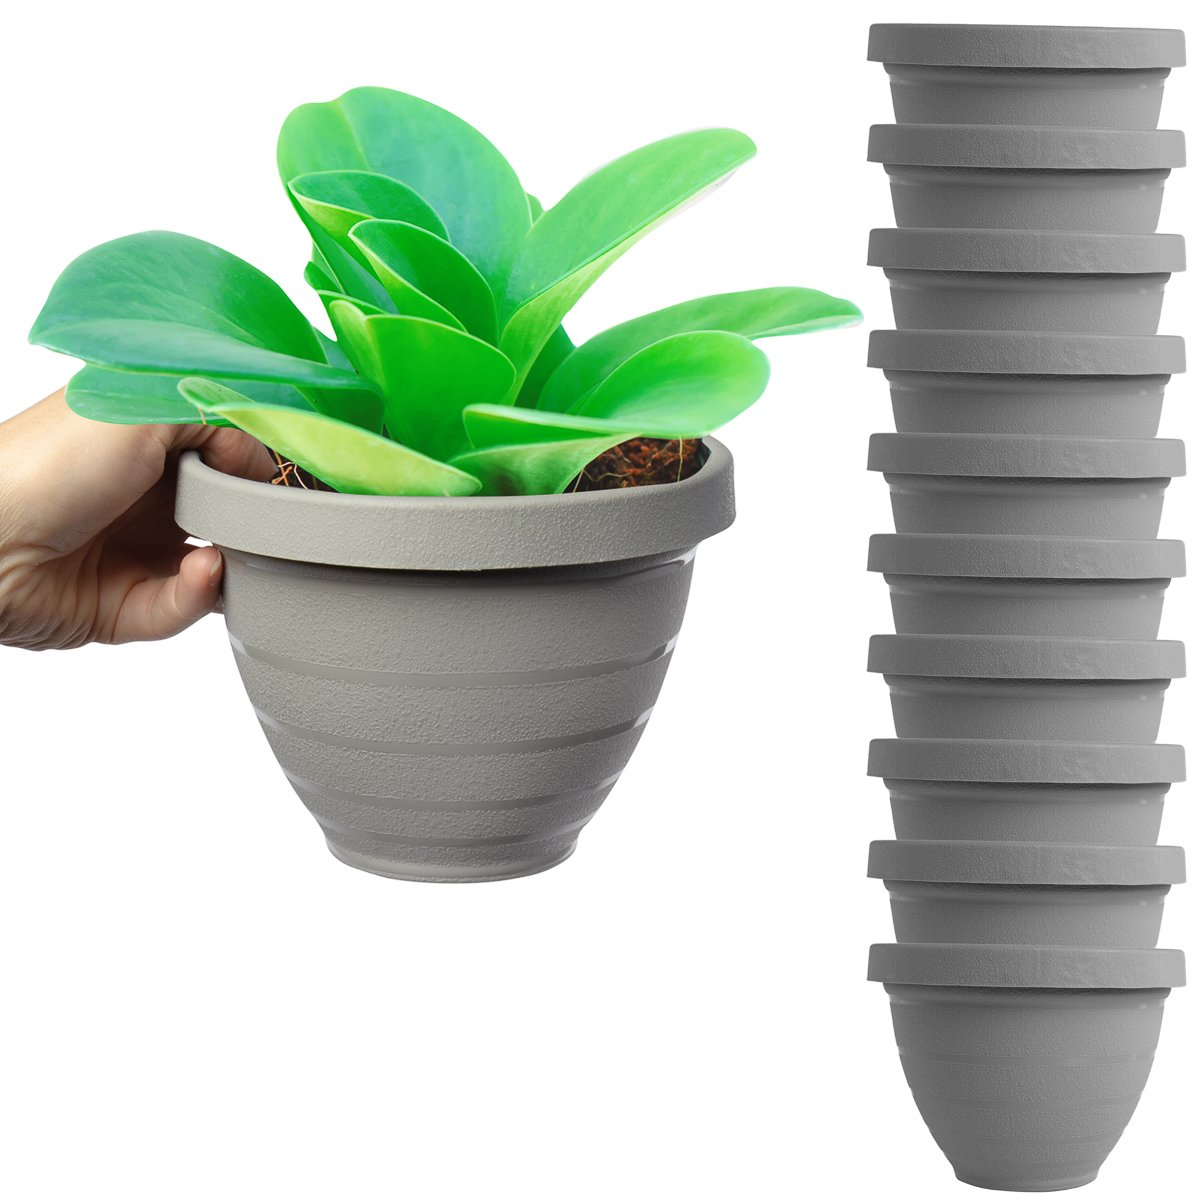 HC Companies 10 Pack 6 Inch Self Watering Planters for Indoor Plants Garden House Live Plant